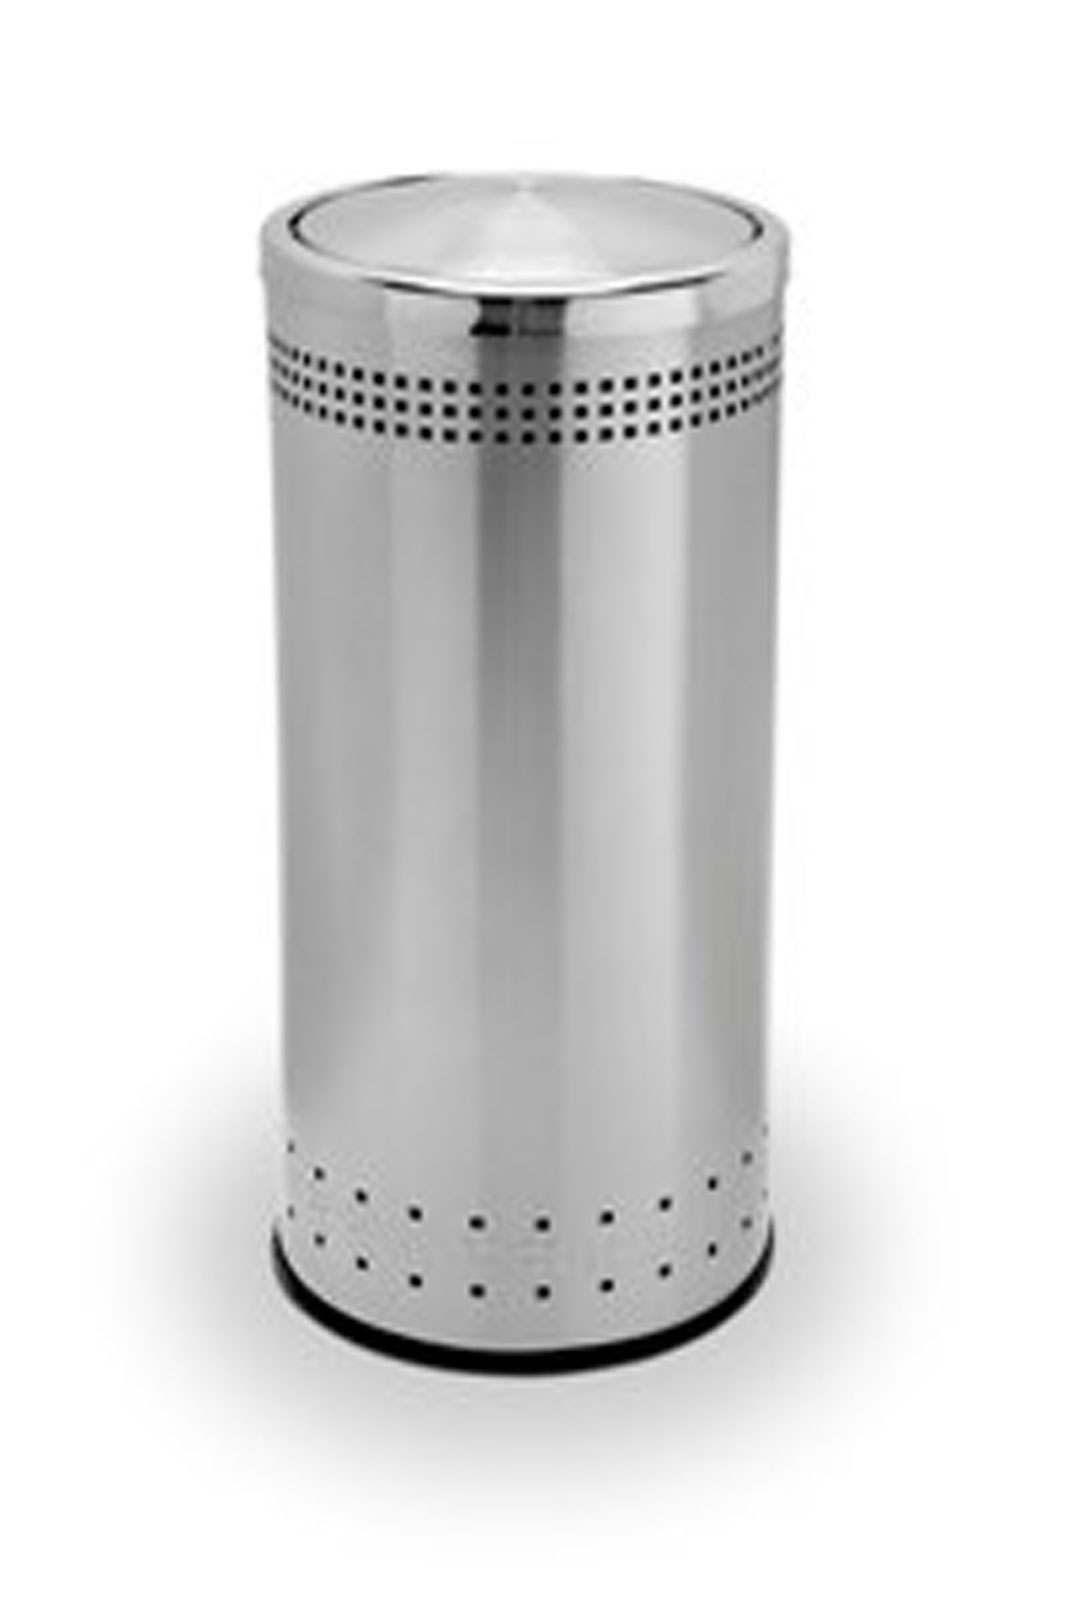 Stainless steel kitchen trash can Photo - 3